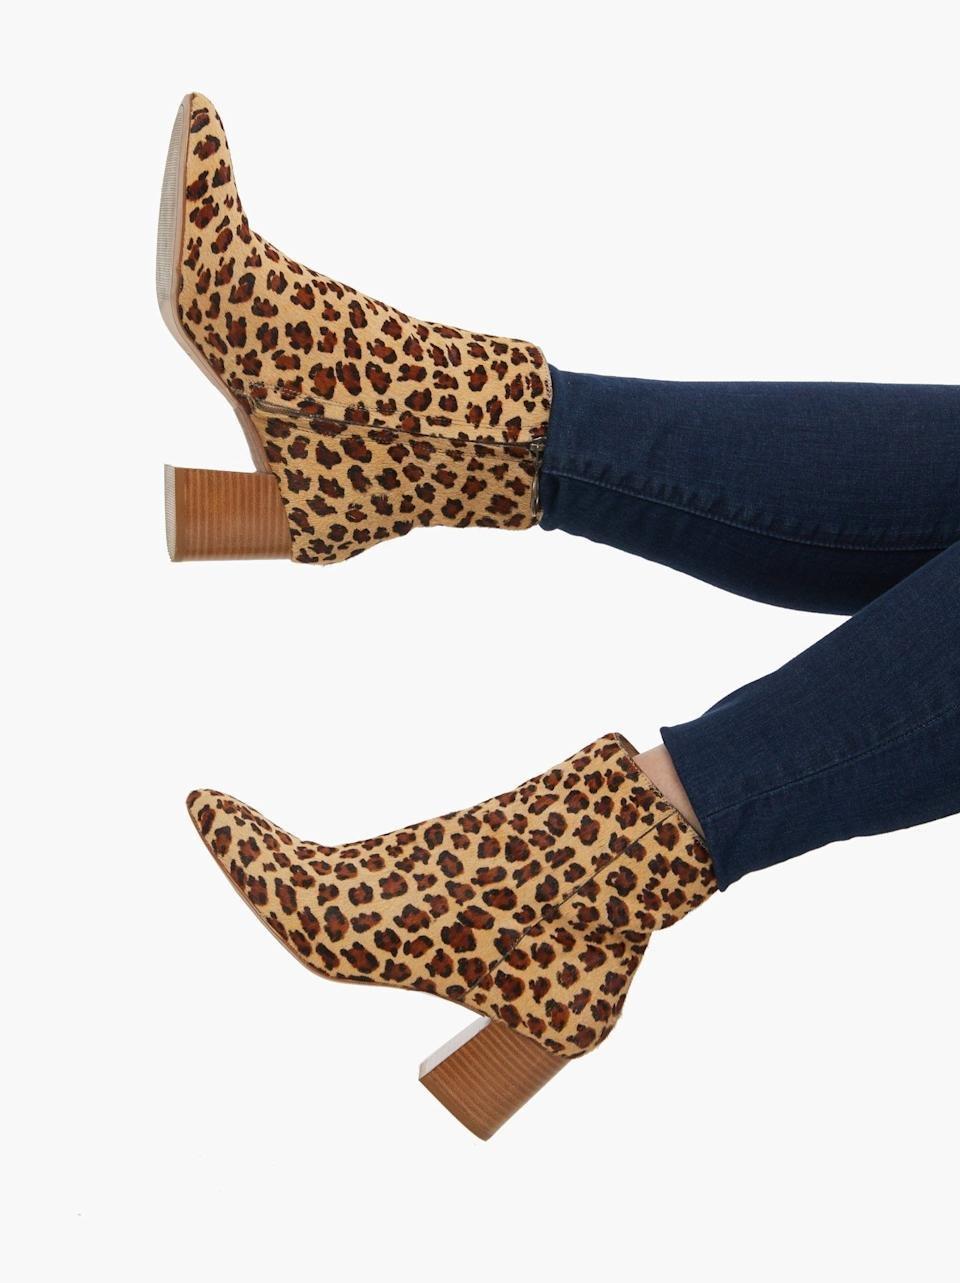 """These may just be the perfect boots. They're comfortable, have a heel that's just high enough, and will make you feel powerful when you walk down the street. You really can't go wrong.<br /><br /><strong>Promising review:</strong>""""I've found every excuse to wear these gorgeous boots! They're my new 'neutral,' and I've received numerous compliments every time I wear them. I even wore them to a wedding and danced for hours with zero pain. Perfect heel height and comfortable. The material is beautiful too!"""" — Jessi I.<br /><br /><strong>Get them from Able for<a href=""""https://go.skimresources.com?id=38395X987171&xs=1&url=https%3A%2F%2Fwww.livefashionable.com%2Fproducts%2Fcelina-ankle-boot&xcust=HPSplurgeWorthy60771eb6e4b01654bb7978a0"""" target=""""_blank"""" rel=""""nofollow noopener noreferrer"""" data-skimlinks-tracking=""""5753950"""" data-vars-affiliate=""""ShareASale"""" data-vars-campaign=""""-SplurgeWorthyBasicsKass10-29-20-5753950"""" data-vars-href=""""https://shareasale.com/r.cfm?afftrack=-SplurgeWorthyBasicsKass10-29-20-5753950&b=999&m=43903&u=1615998&urllink=www.livefashionable.com%2Fproducts%2Fcelina-ankle-boot"""" data-vars-keywords=""""fast fashion"""" data-vars-link-id=""""0"""" data-vars-price="""""""" data-vars-redirecturl=""""www.livefashionable.com/products/celina-ankle-boot"""" data-ml-dynamic=""""true"""" data-ml-dynamic-type=""""sl"""" data-orig-url=""""https://shareasale.com/r.cfm?afftrack=-SplurgeWorthyBasicsKass10-29-20-5753950&b=999&m=43903&u=1615998&urllink=www.livefashionable.com%2Fproducts%2Fcelina-ankle-boot"""" data-ml-id=""""33"""">$154</a>(originally $188; available in sizes 6-10 and in five colors and patterns).</strong>"""